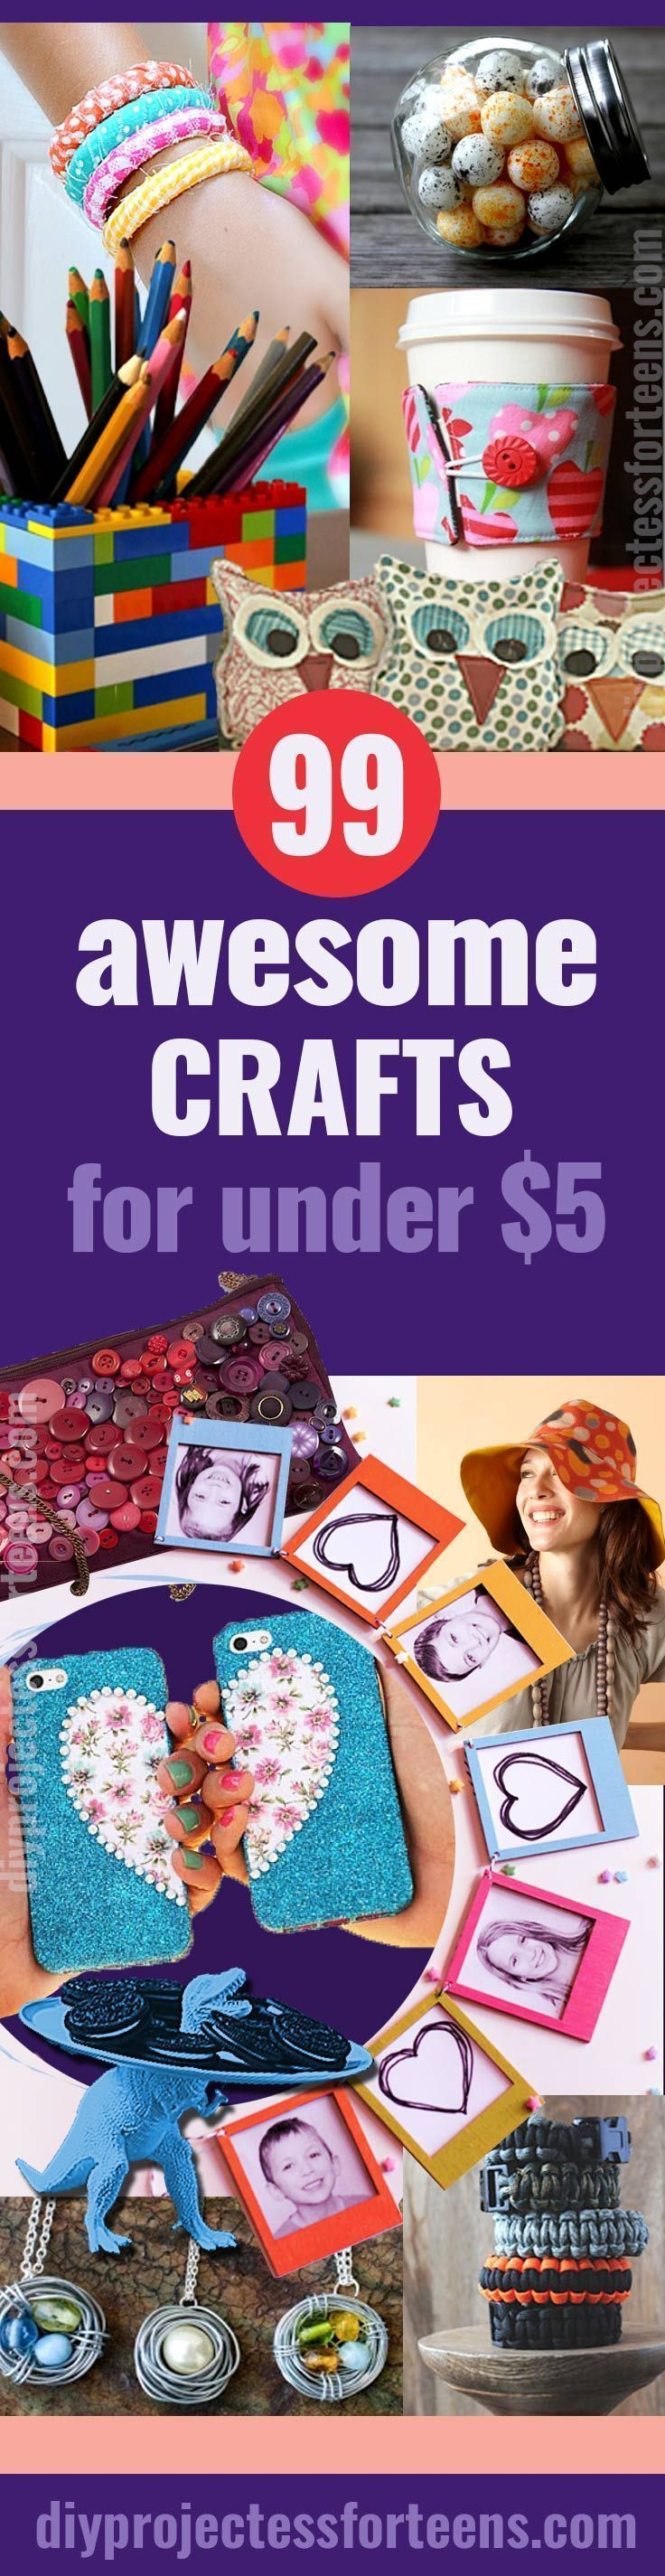 Try These Inexpensive But Cool Craft Project Ideas For Creative Gifts Home Decor Fashion And Fun